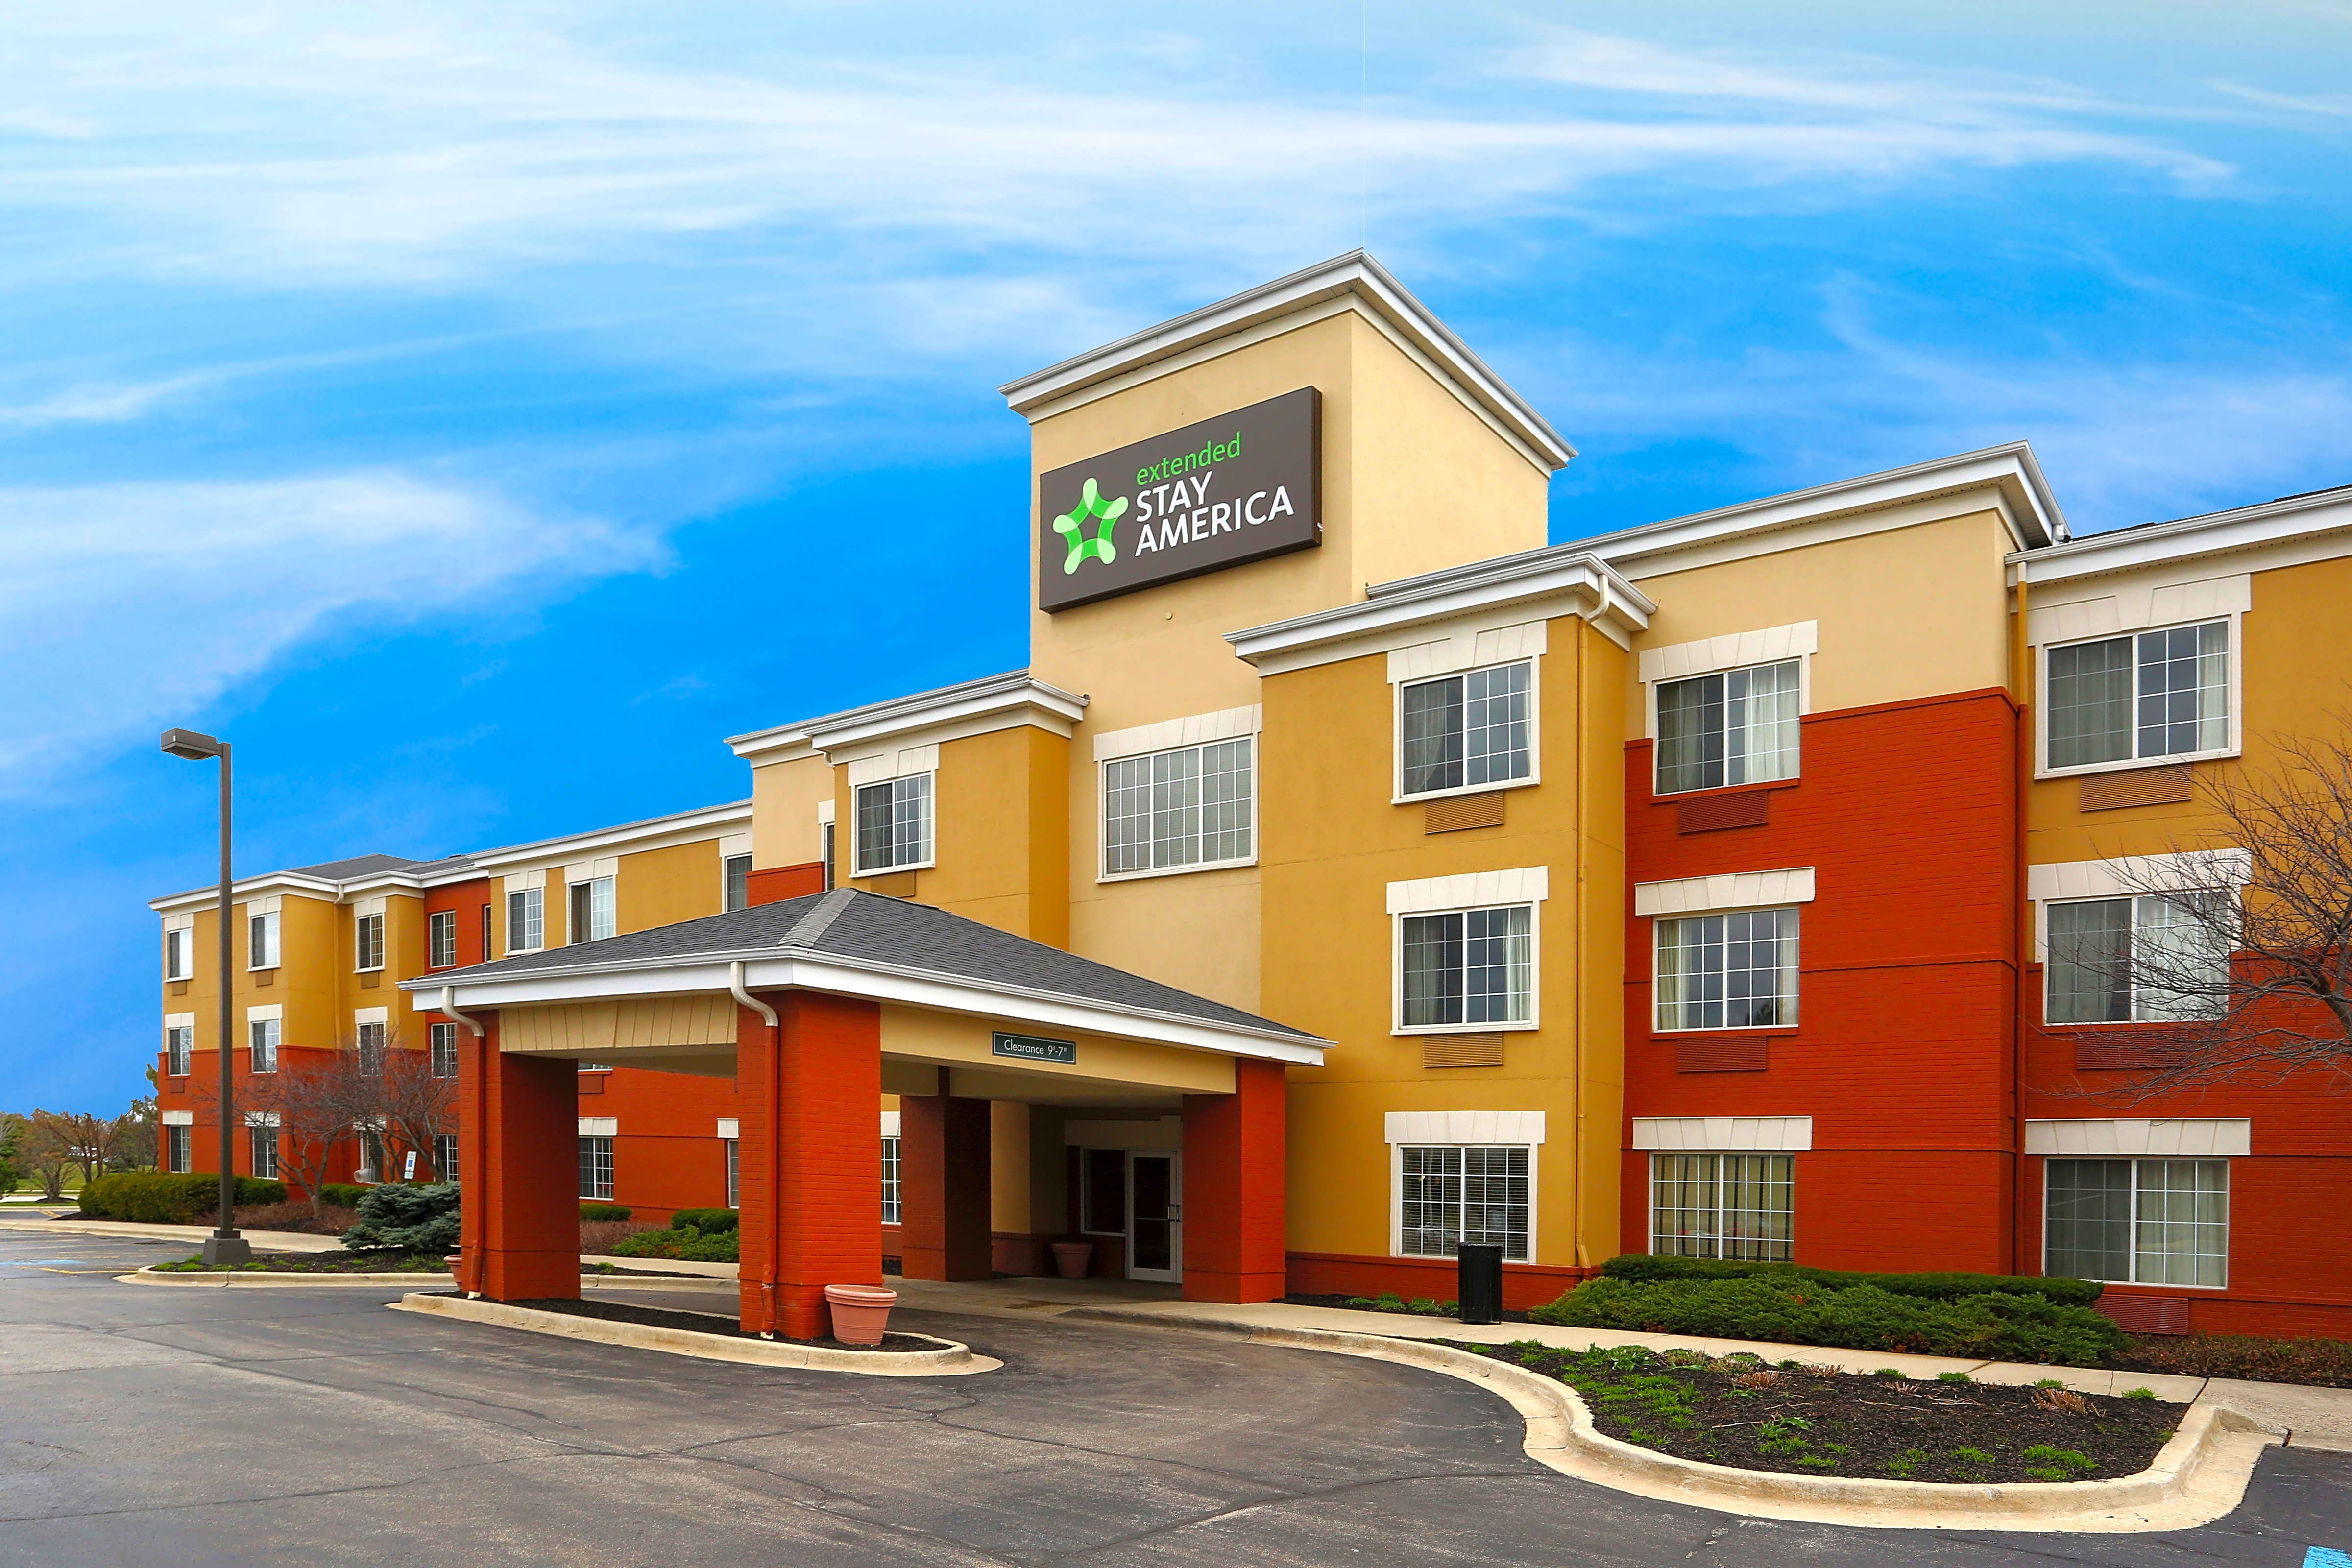 Apartments Near AIU Online Furnished Studio - Chicago - Schaumburg - Convention Center for American Intercontinental University Online Students in Hoffman Estates, IL